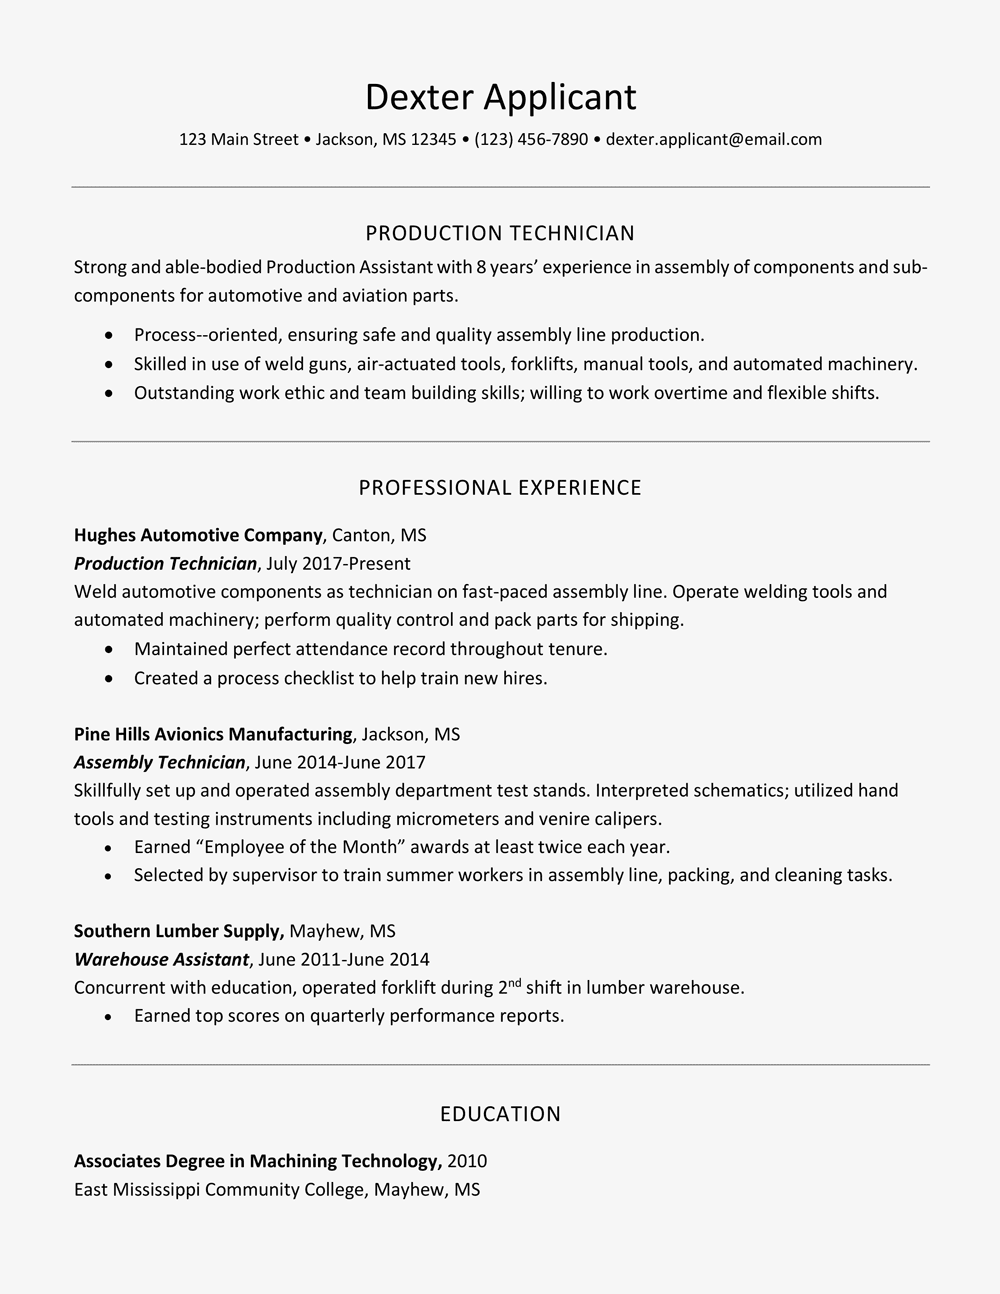 How To Write An Amazing Resume | Create A Professional Resume